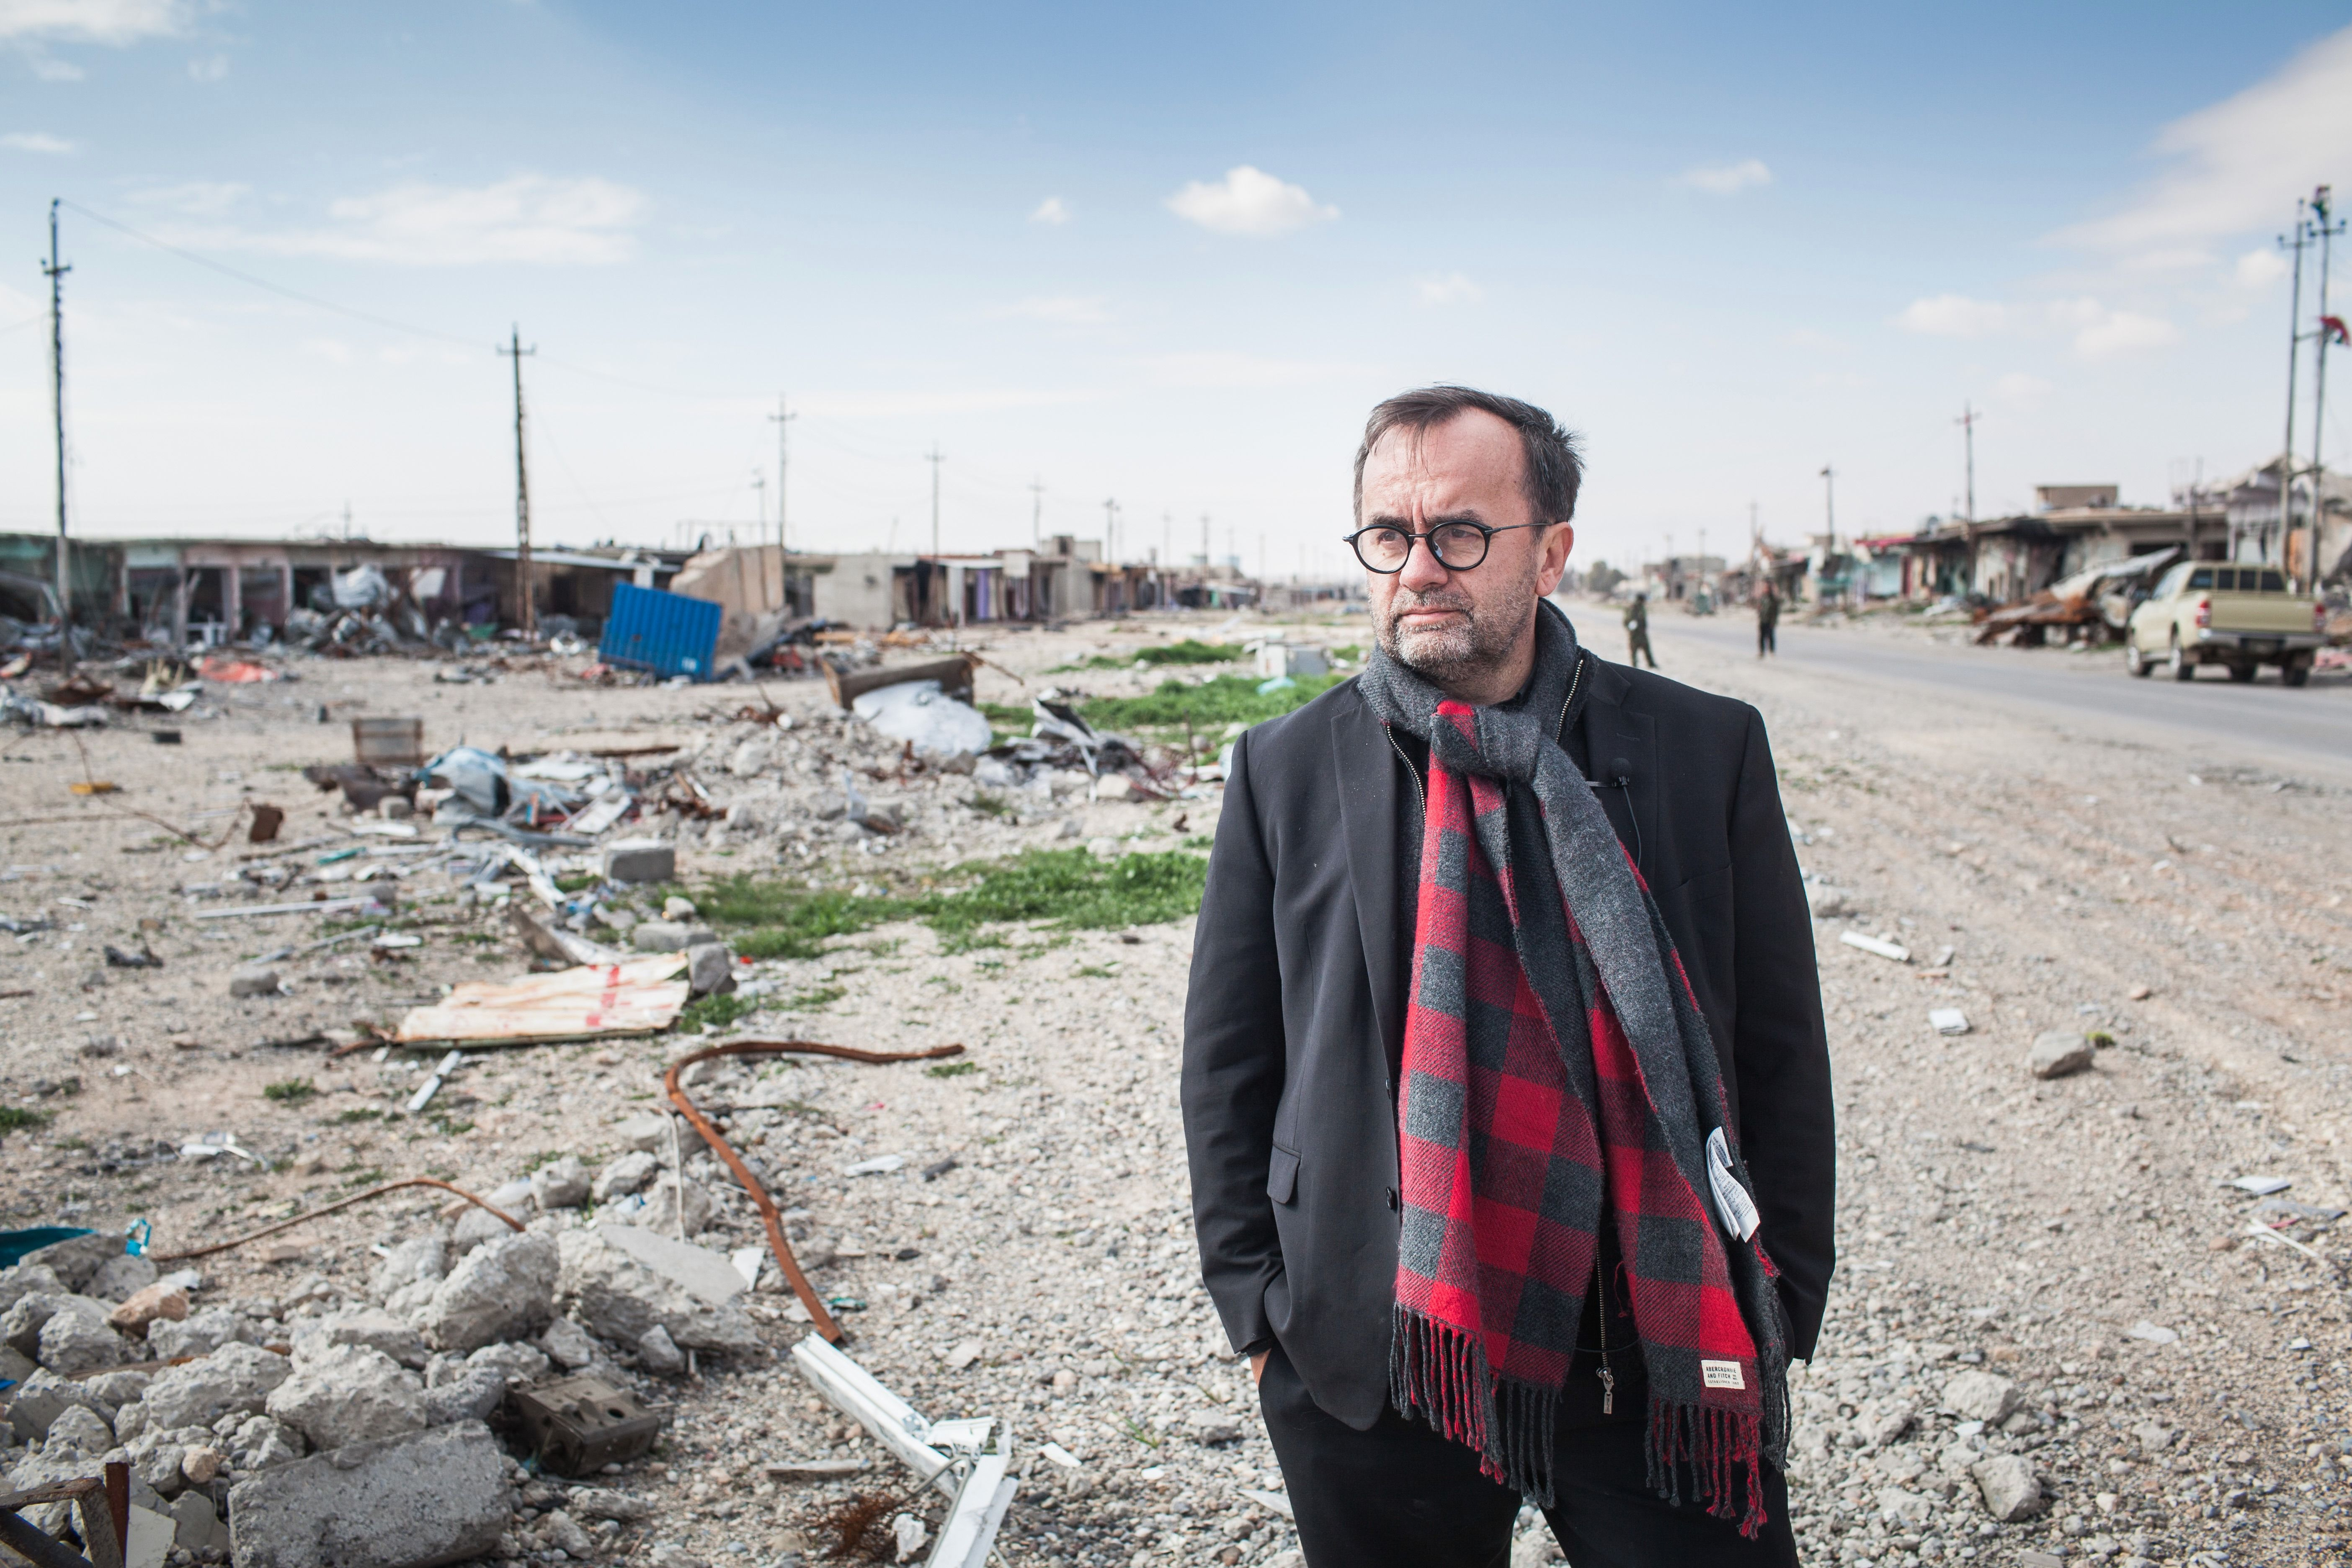 Father Patrick Desbois visits site of ISIS atrocities in Sinjar.